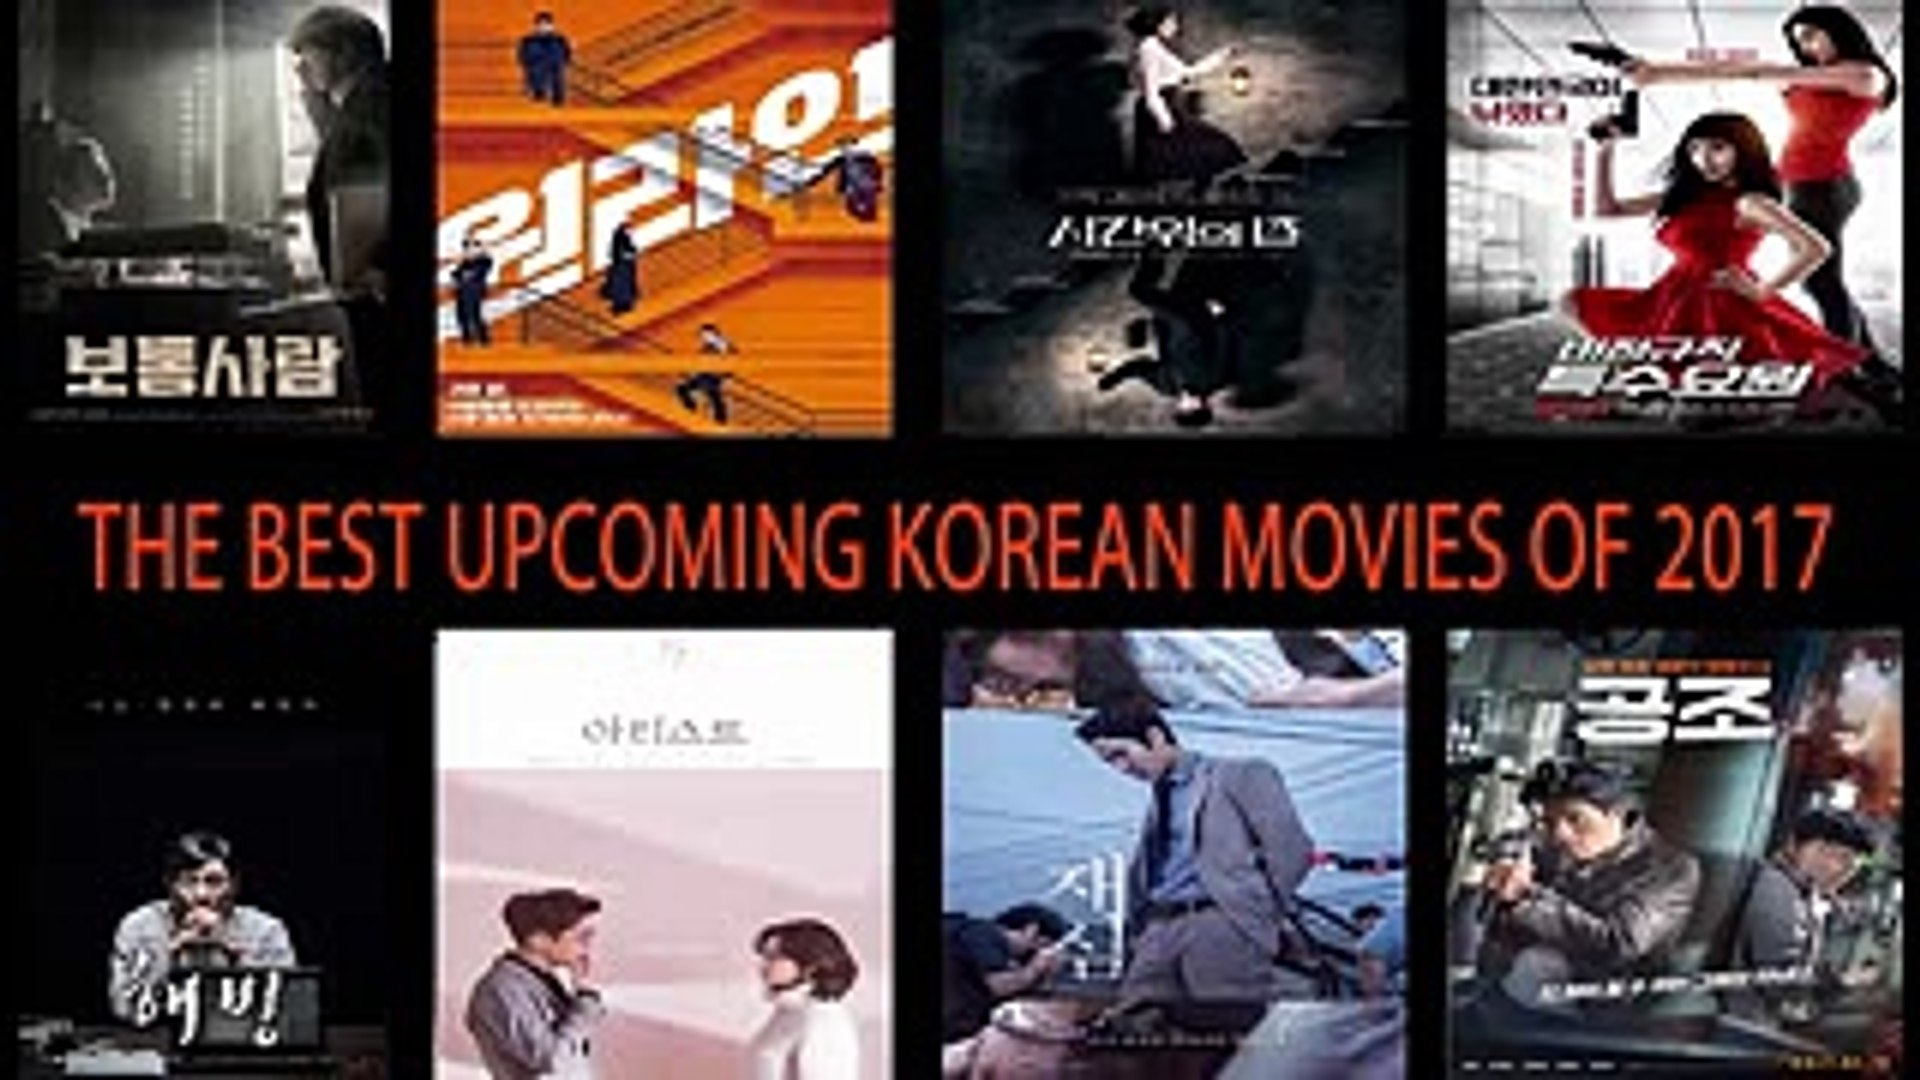 Top upcoming korean movies of 2017